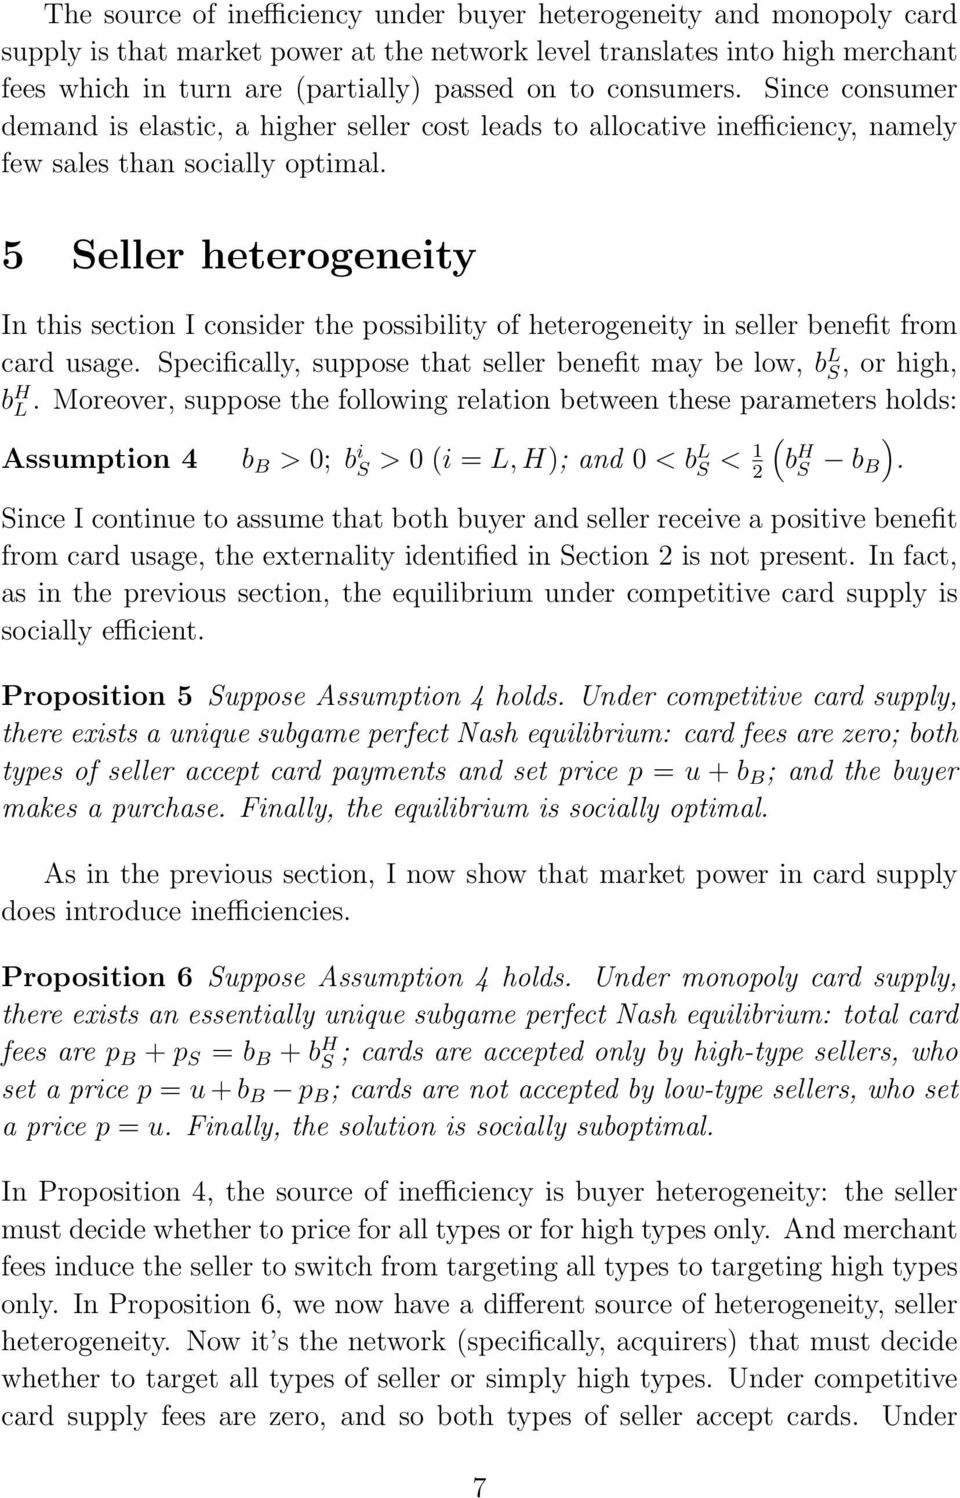 5 Seller heterogeneity In this section I consider the possibility of heterogeneity in seller benefit from card usage. Specifically, suppose that seller benefit may be low, b L S, or high, b H L.